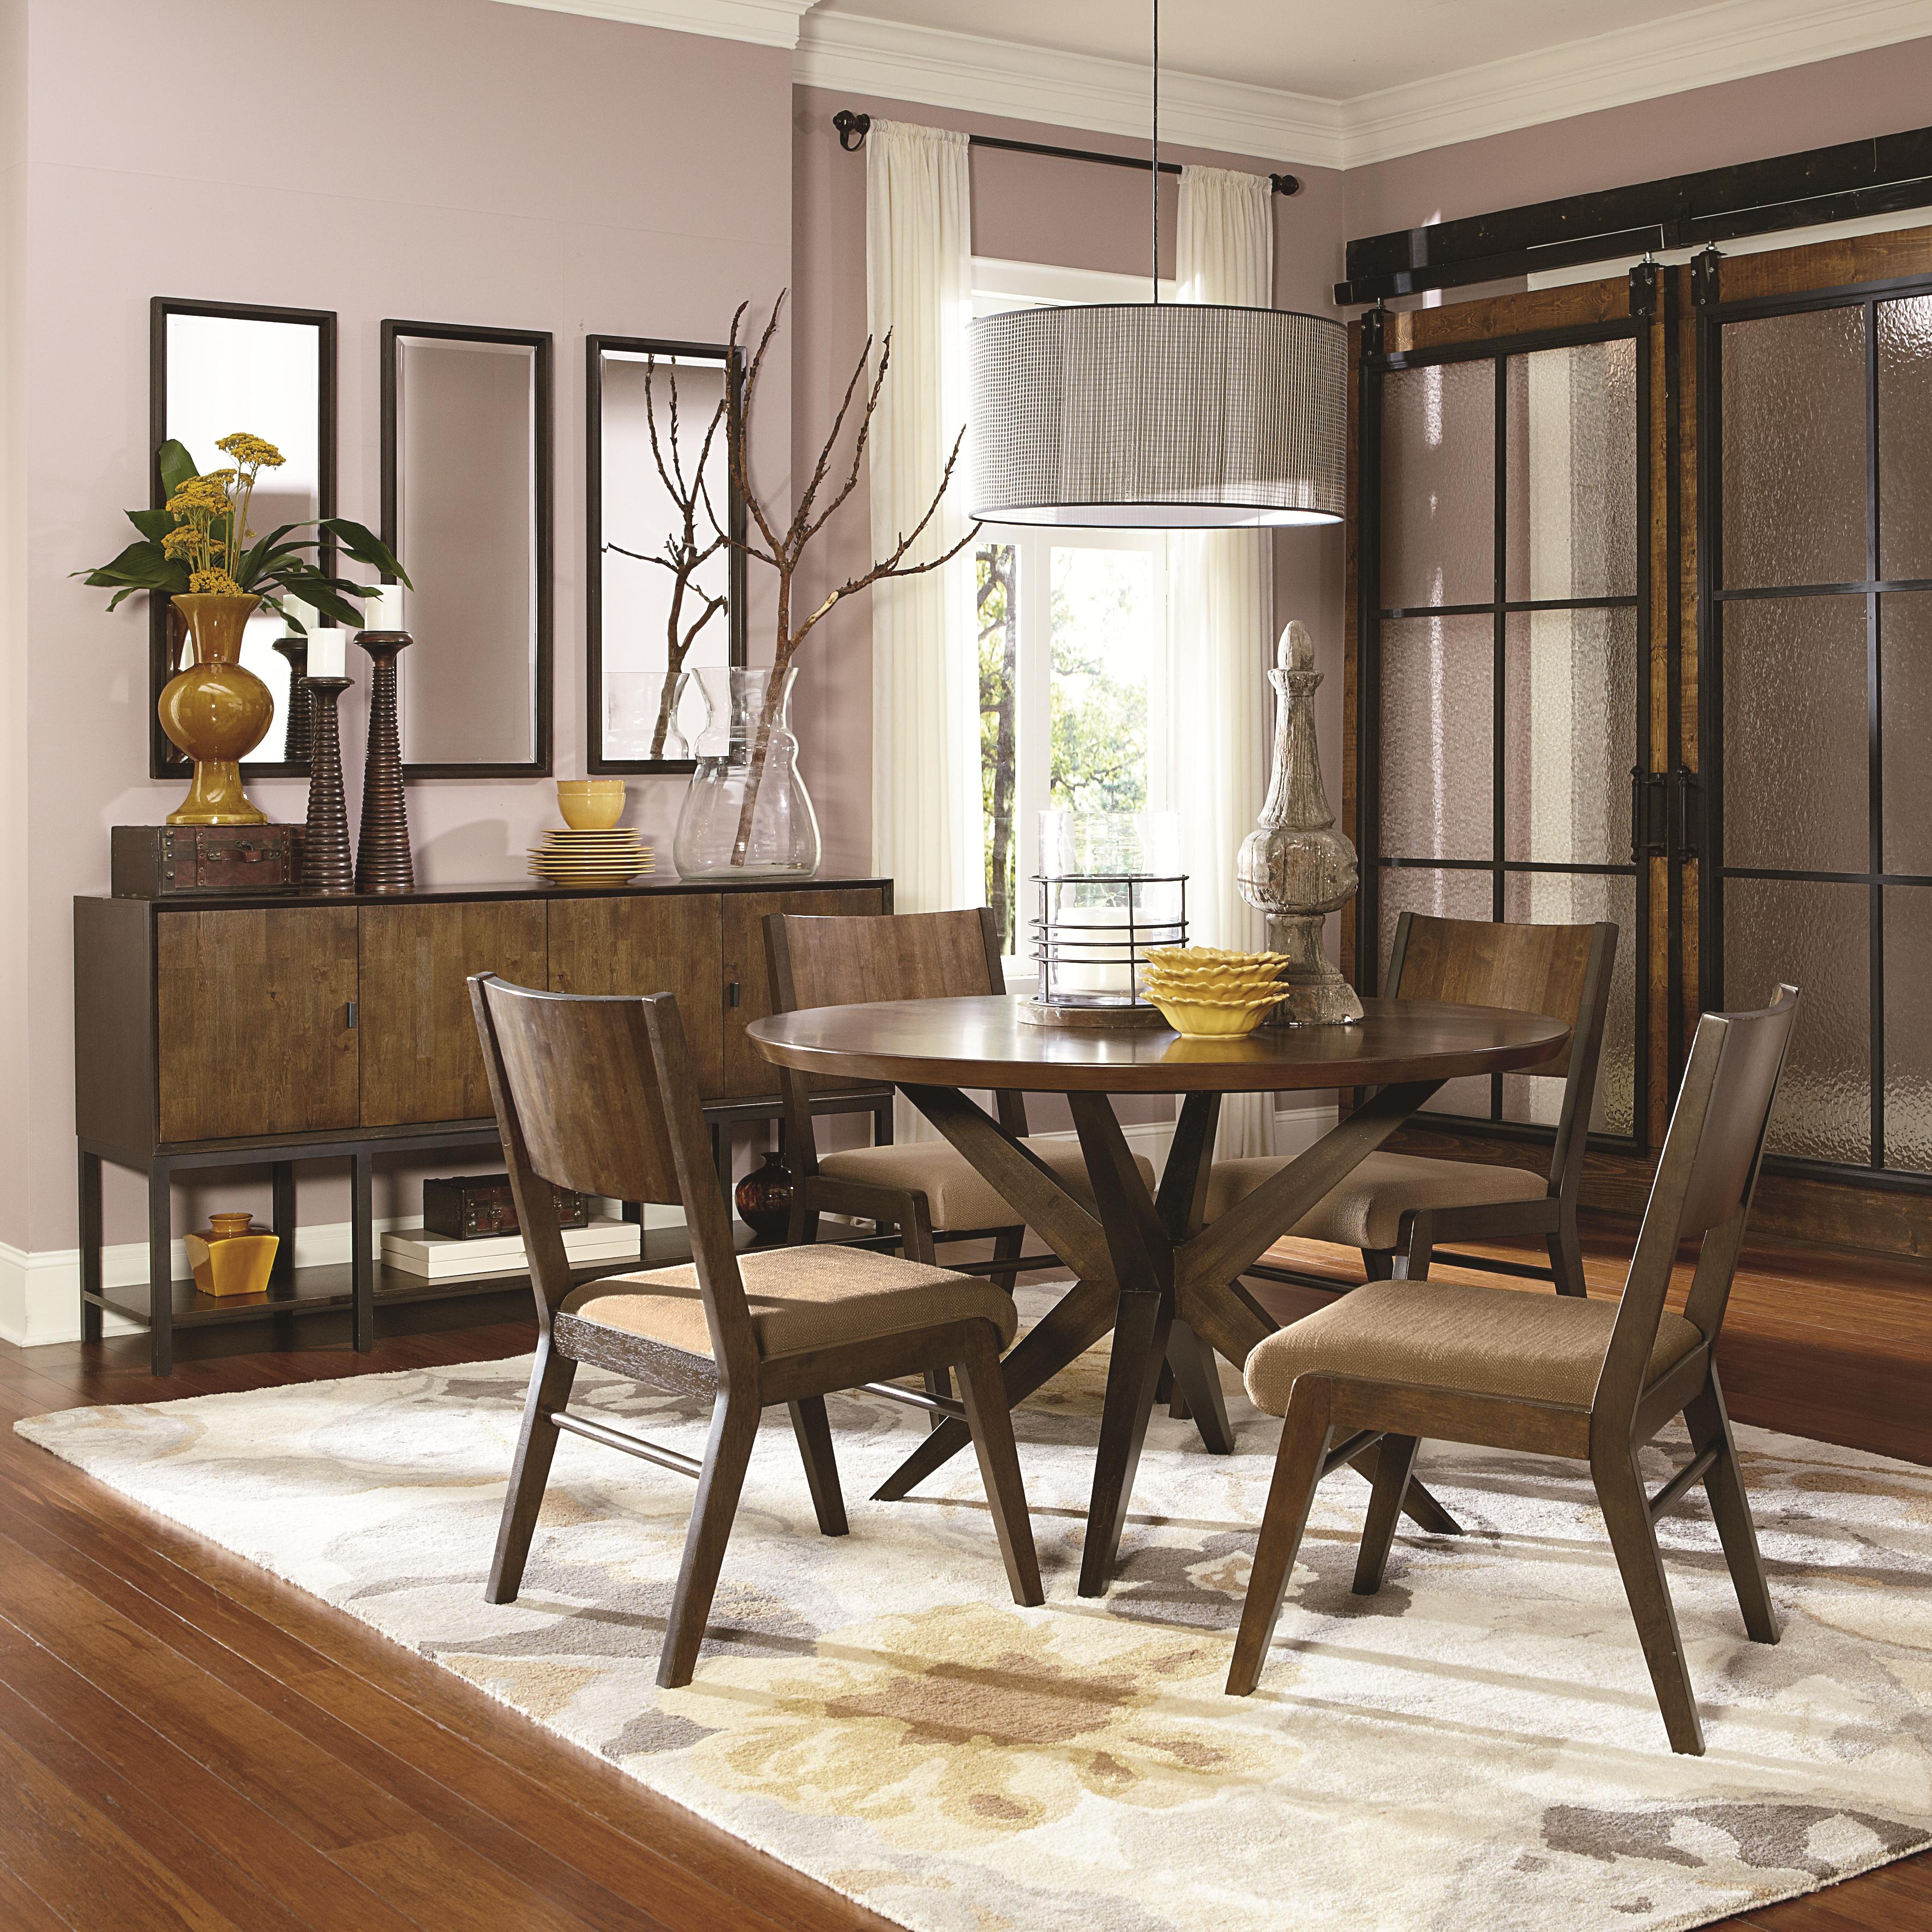 Legacy Dining Room Furniture Legacy Classic Kateri Round Table With Pedestal Bottom In Hazelnut